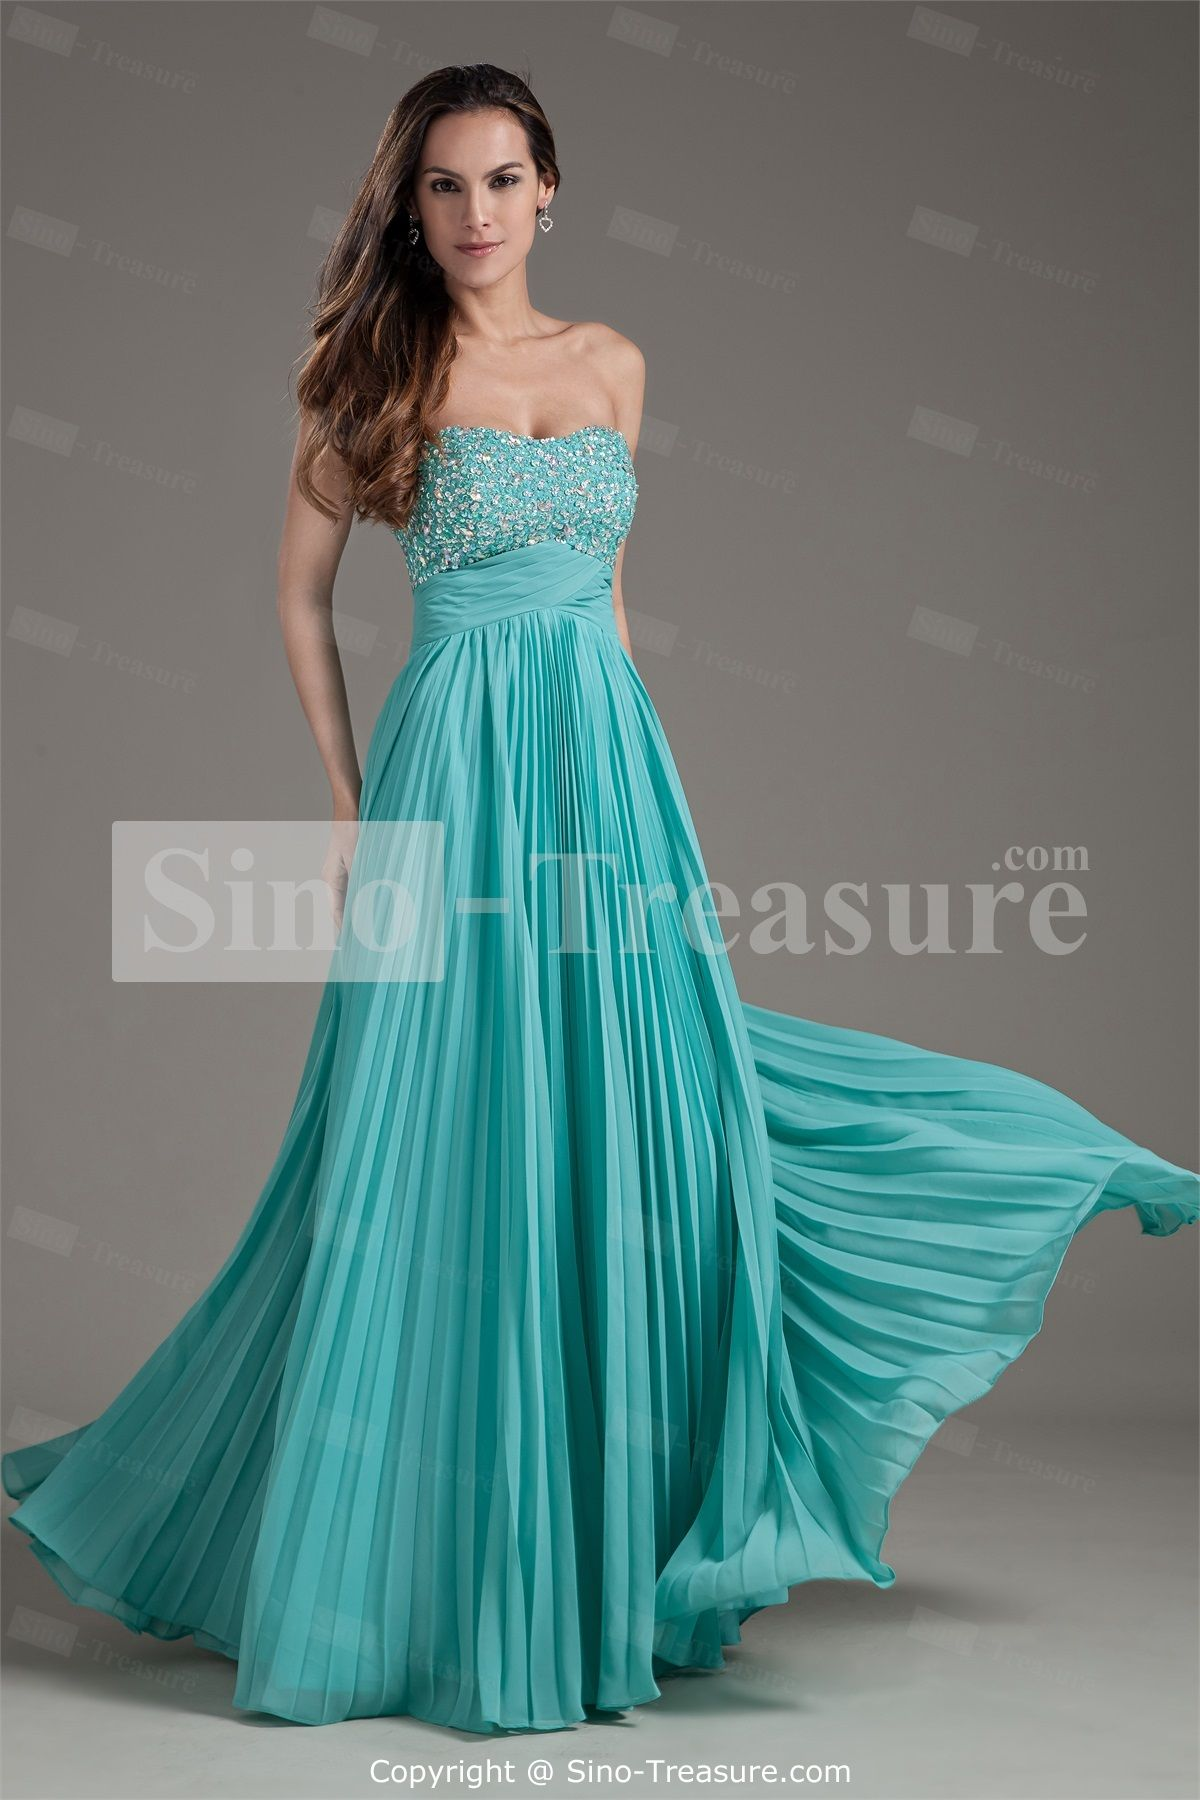 Colorful Dresses For Wedding Events Ensign - All Wedding Dresses ...